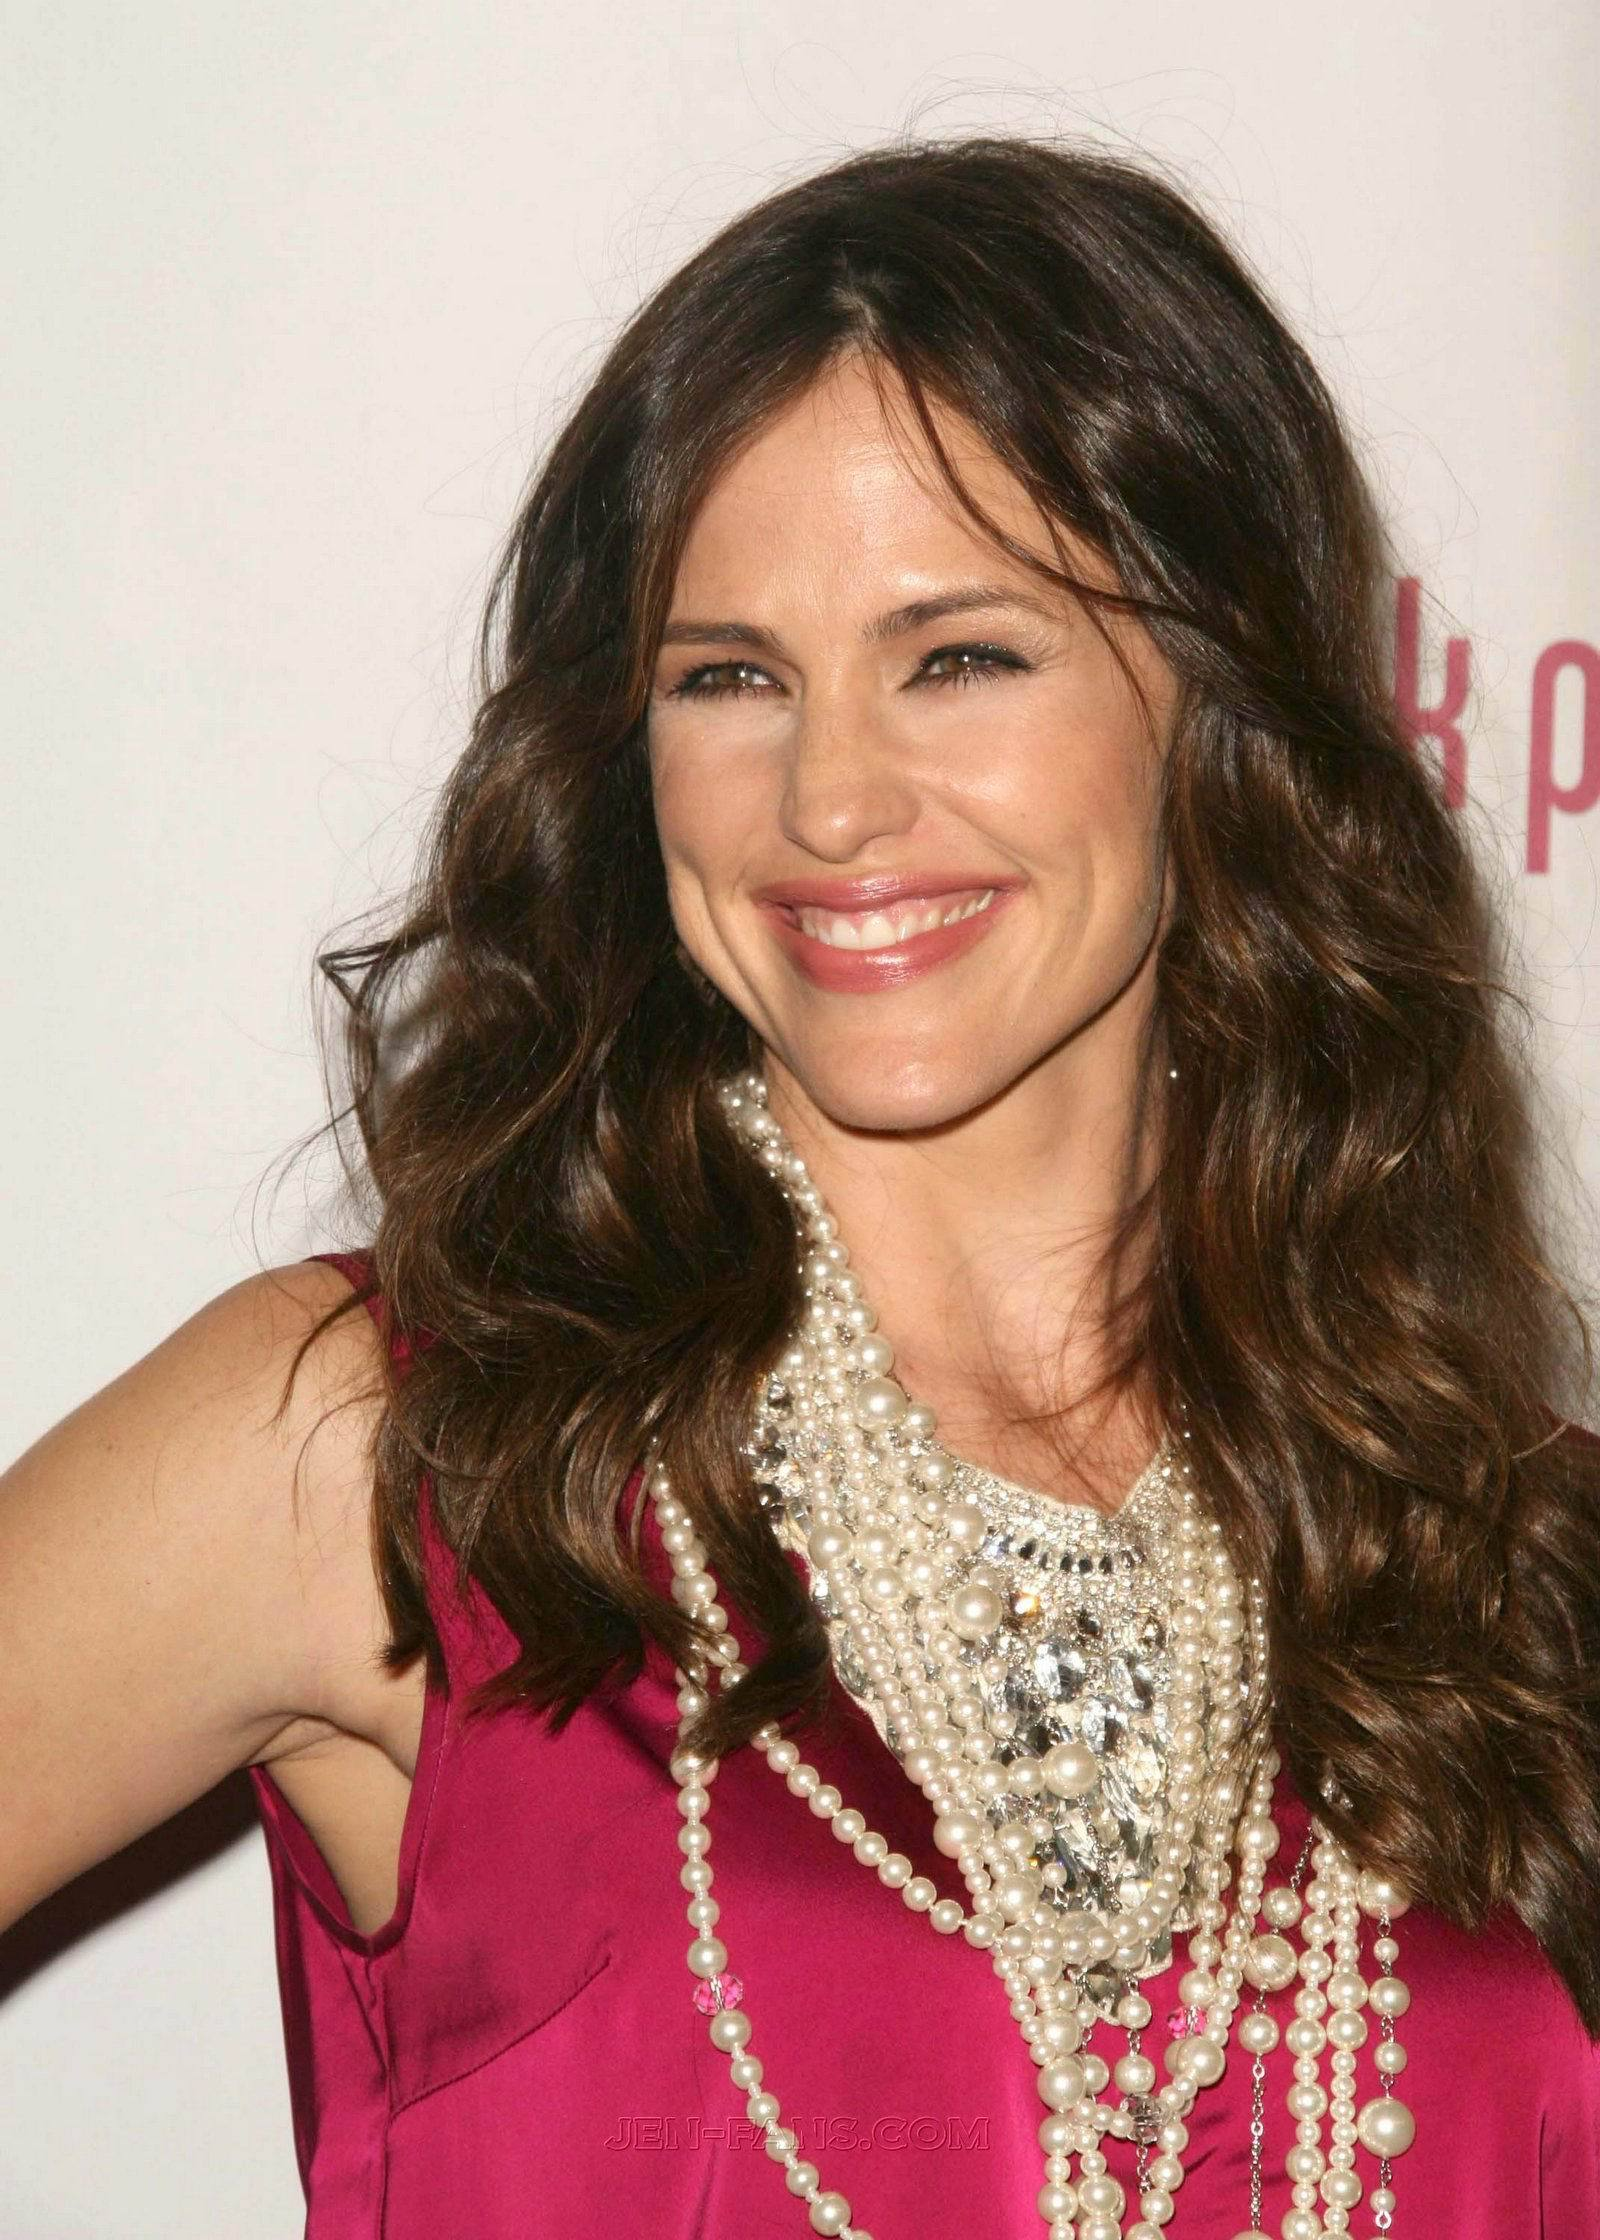 Jen at the 6th Annual Pink Party!